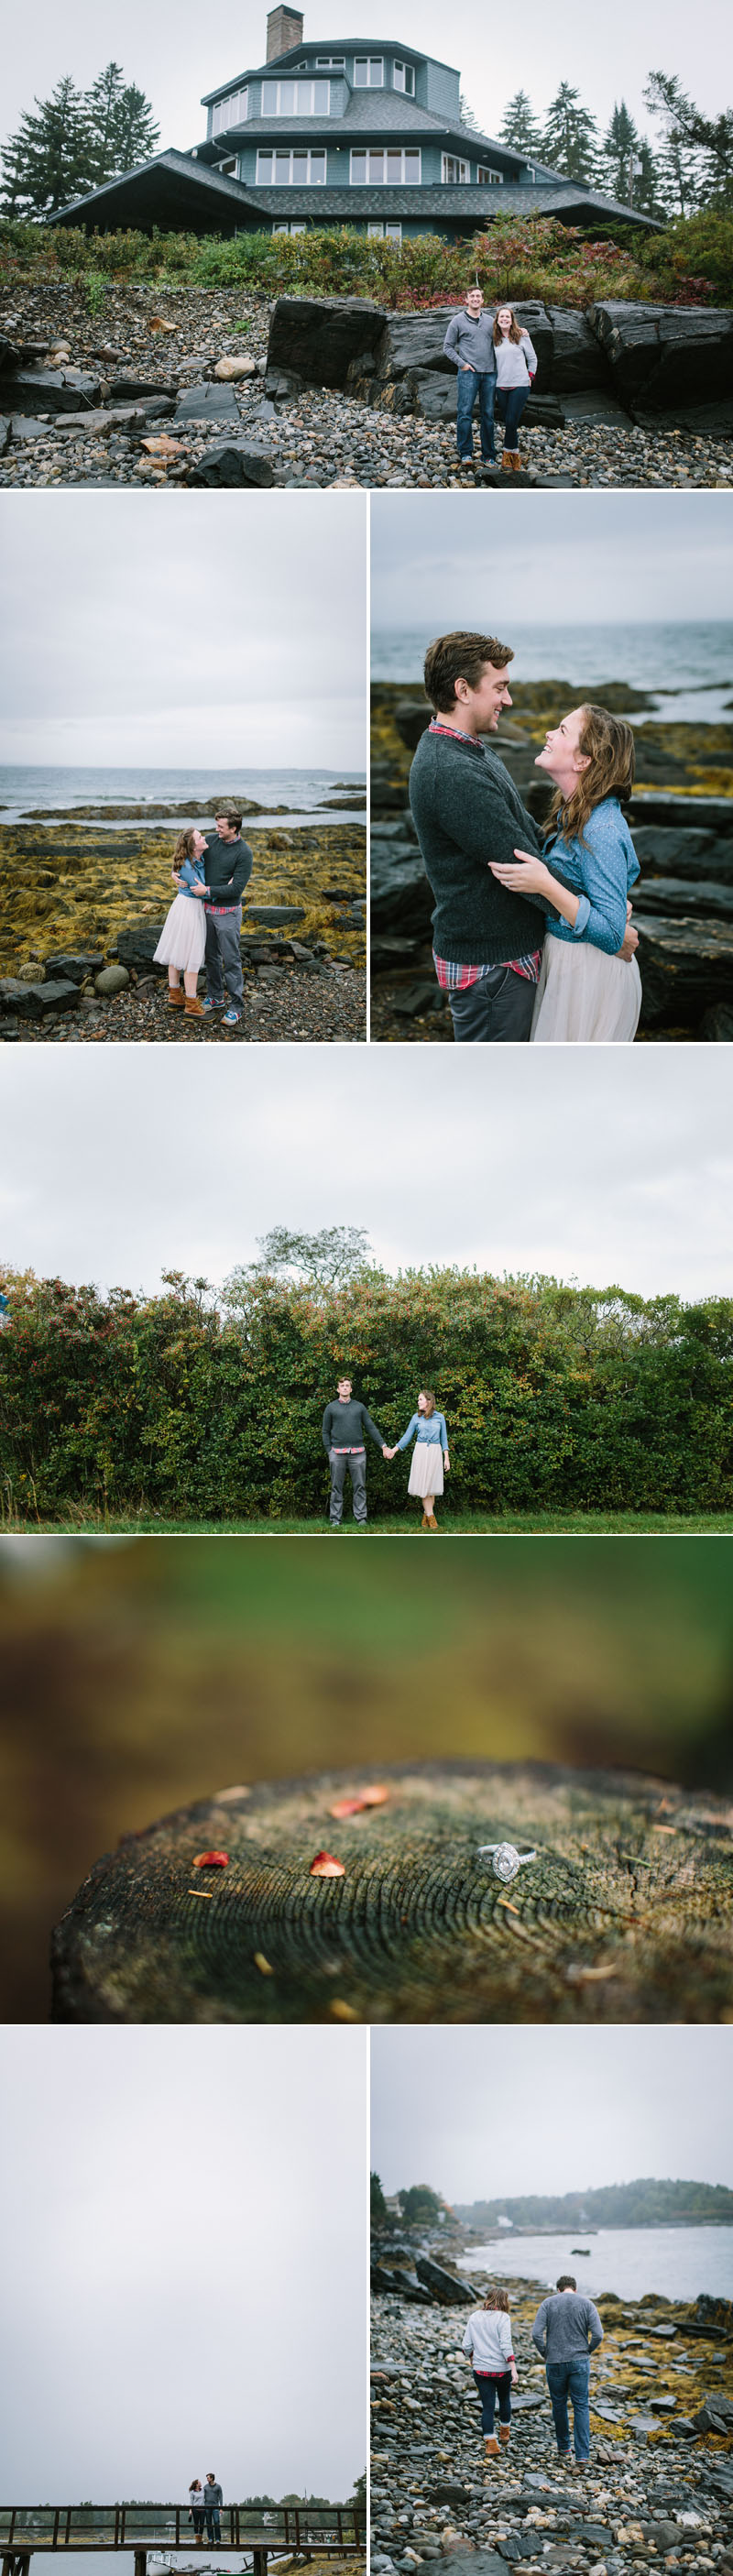 02-harpswell-maine-engagement-courtney-elizabeth-photo.jpg